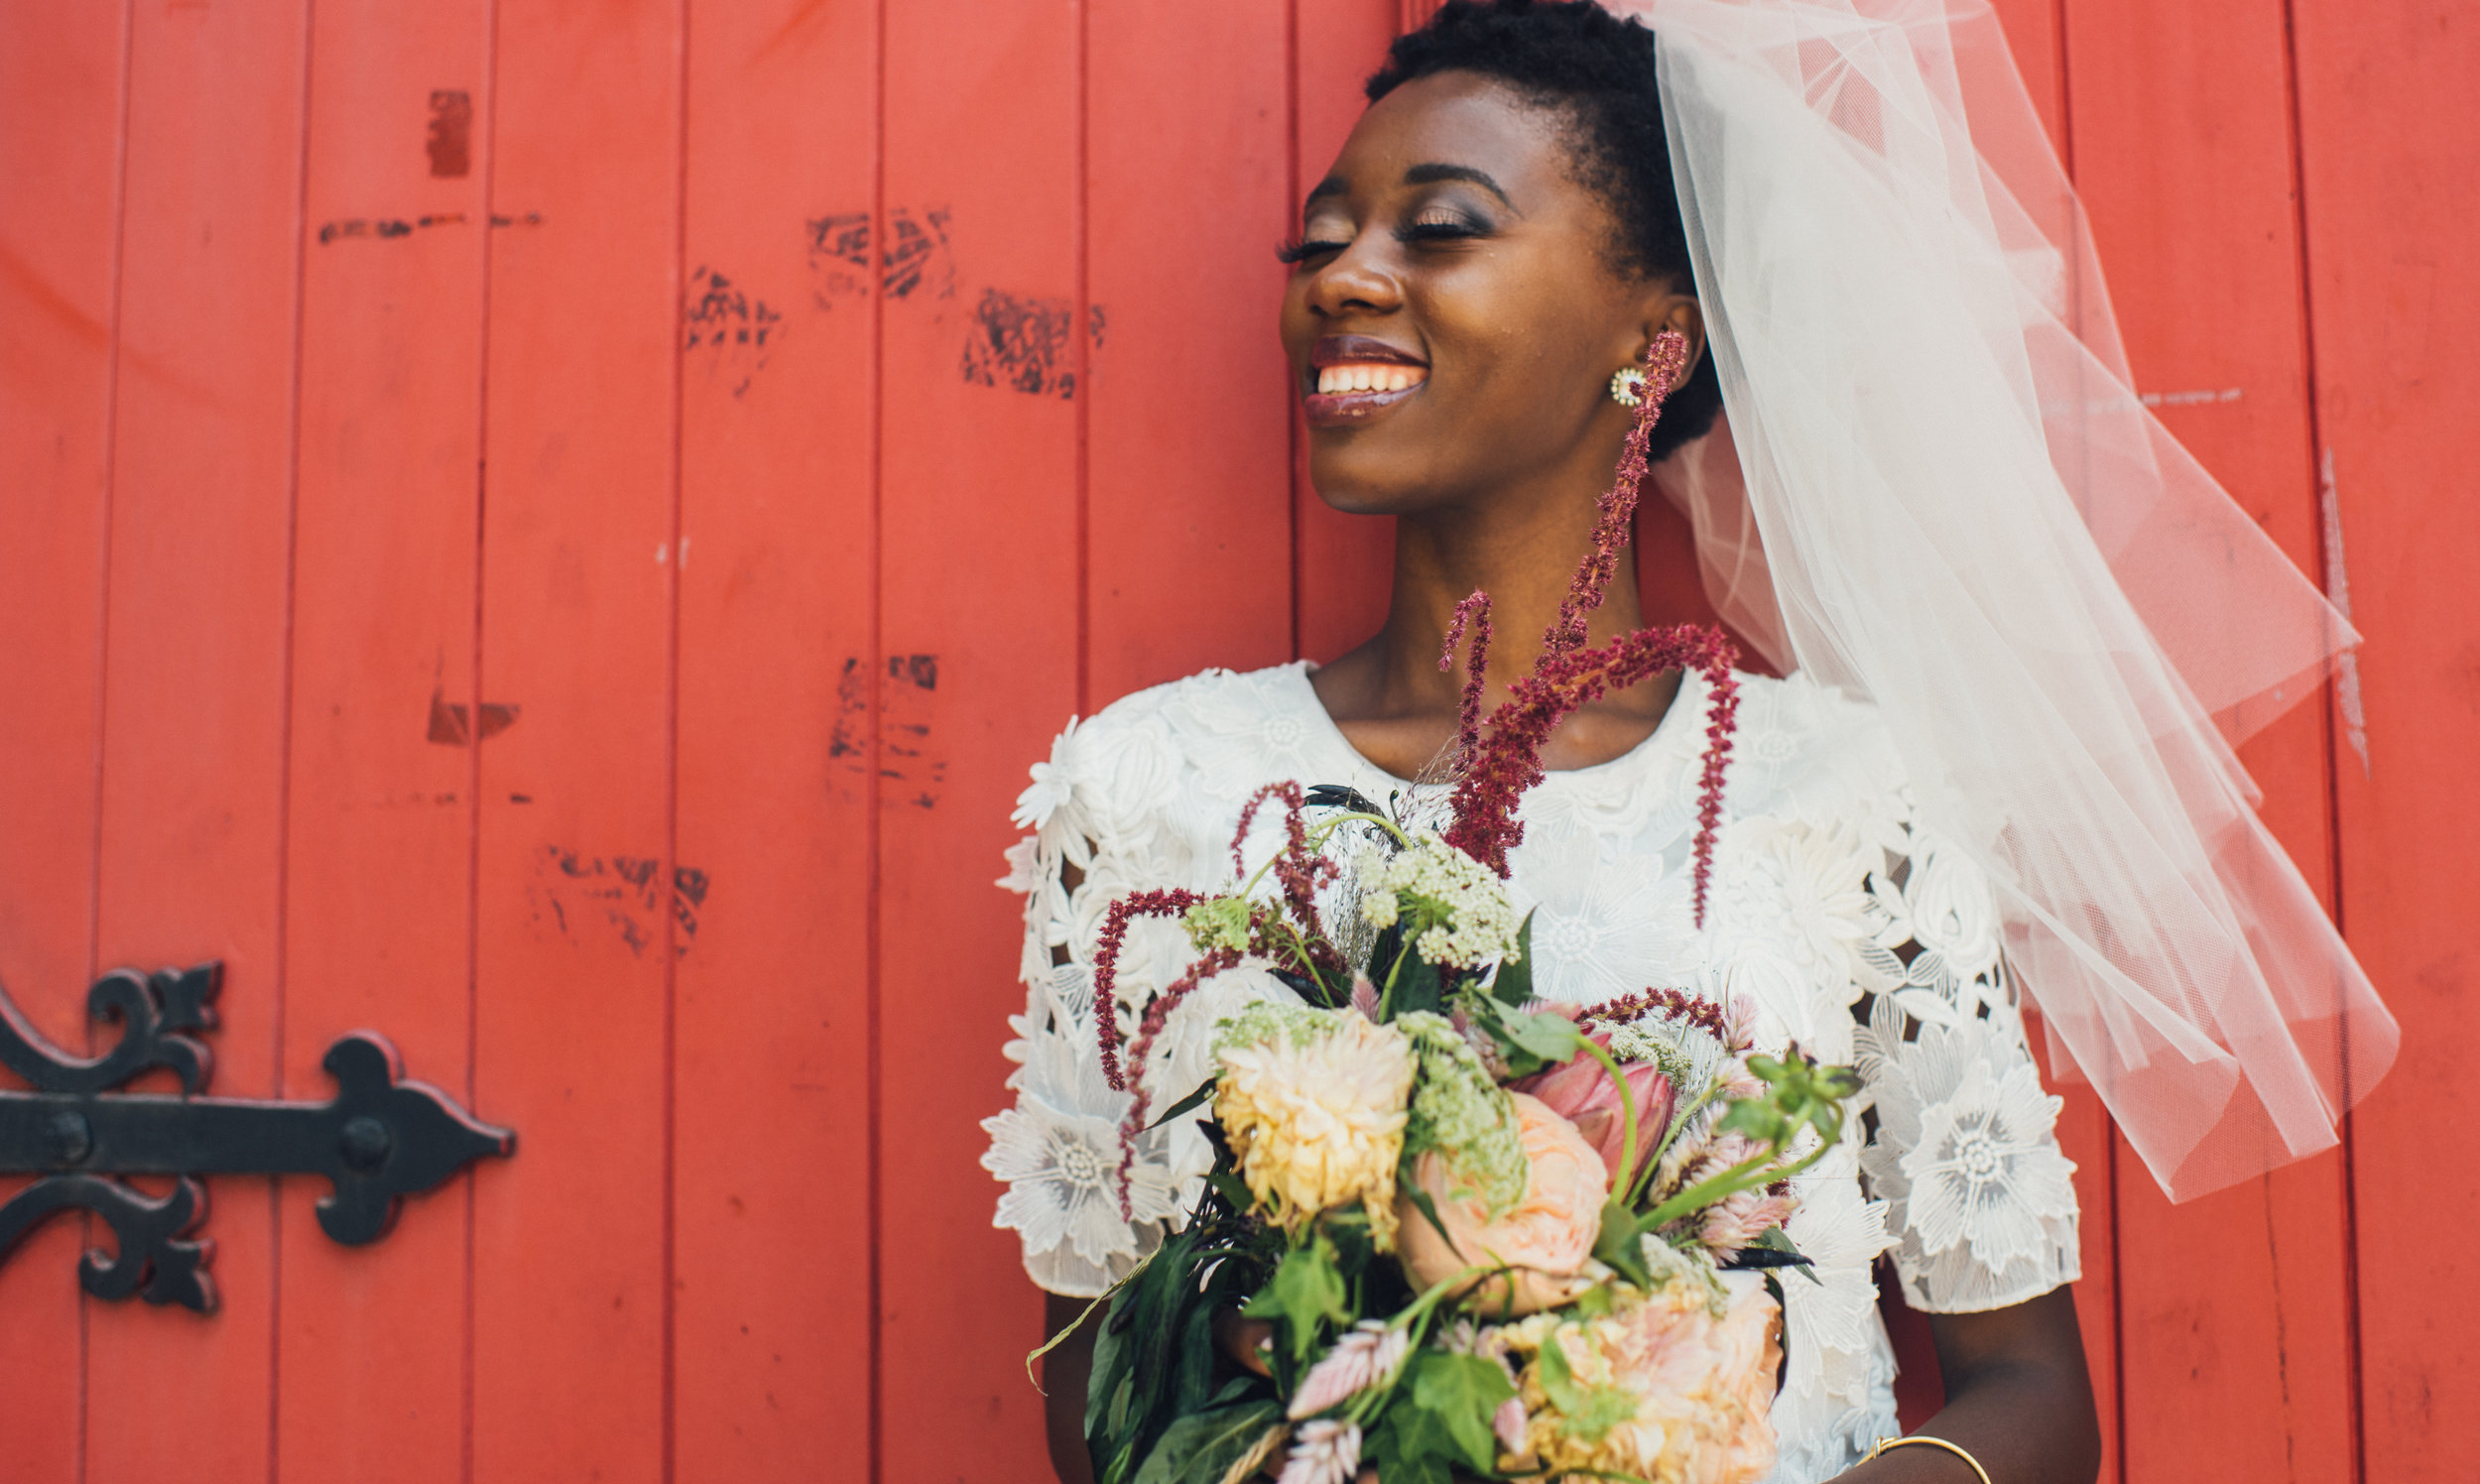 BROOKLYN BRIDE - INTIMATE WEDDING PHOTOGRAPHER - TWOTWENTY by CHI-CHI AGBIM-138.jpg